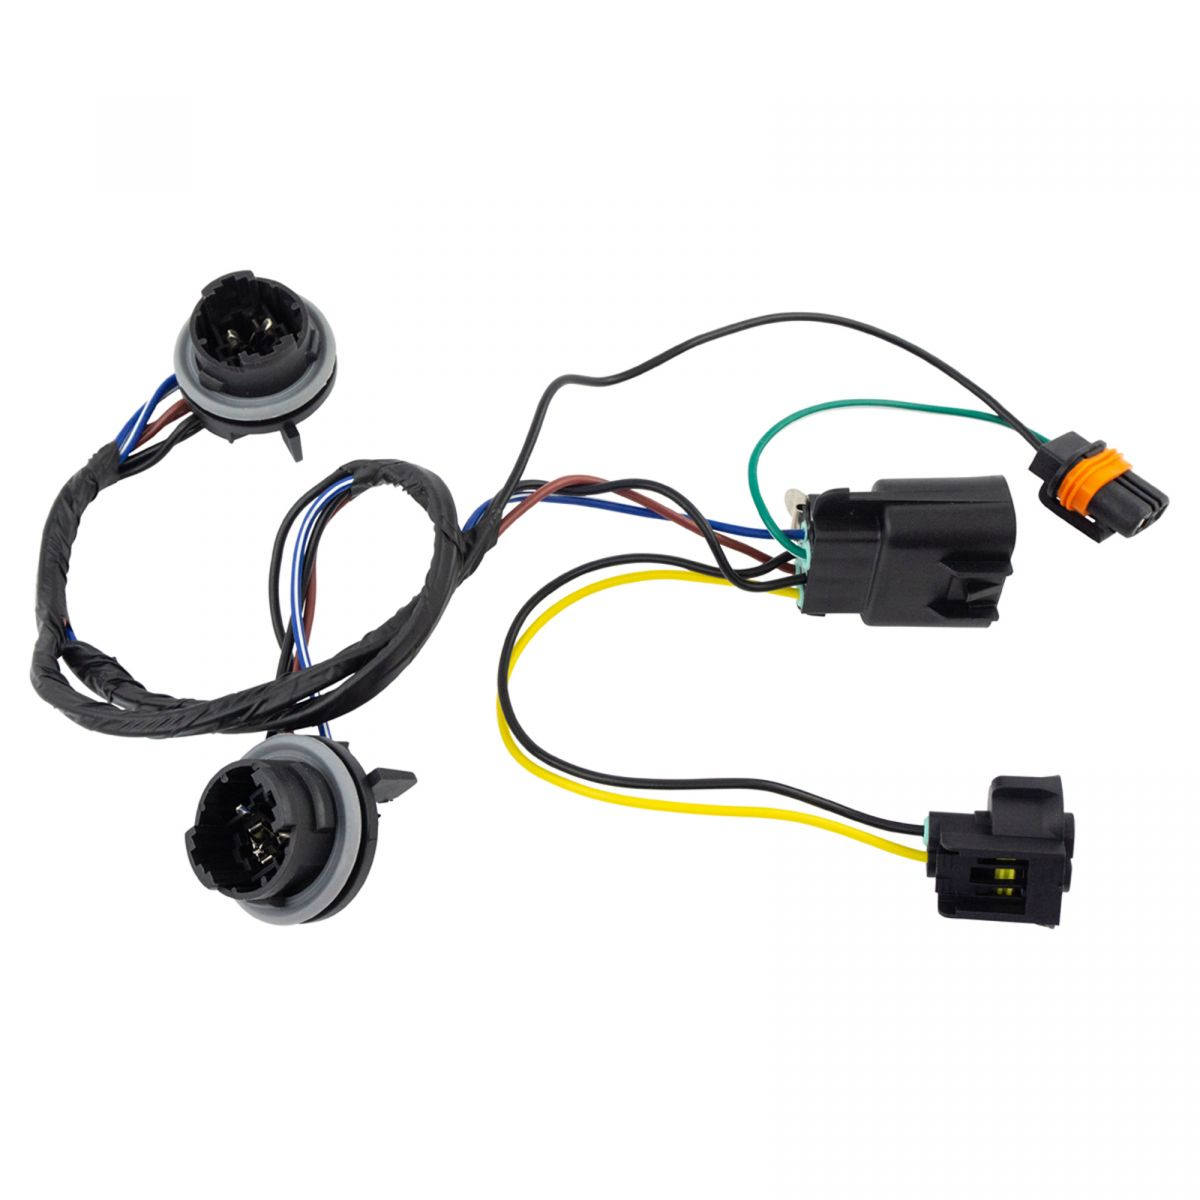 hight resolution of dorman 645 745 headlight lamp wiring harness lh or rh for chevy pickup truck new